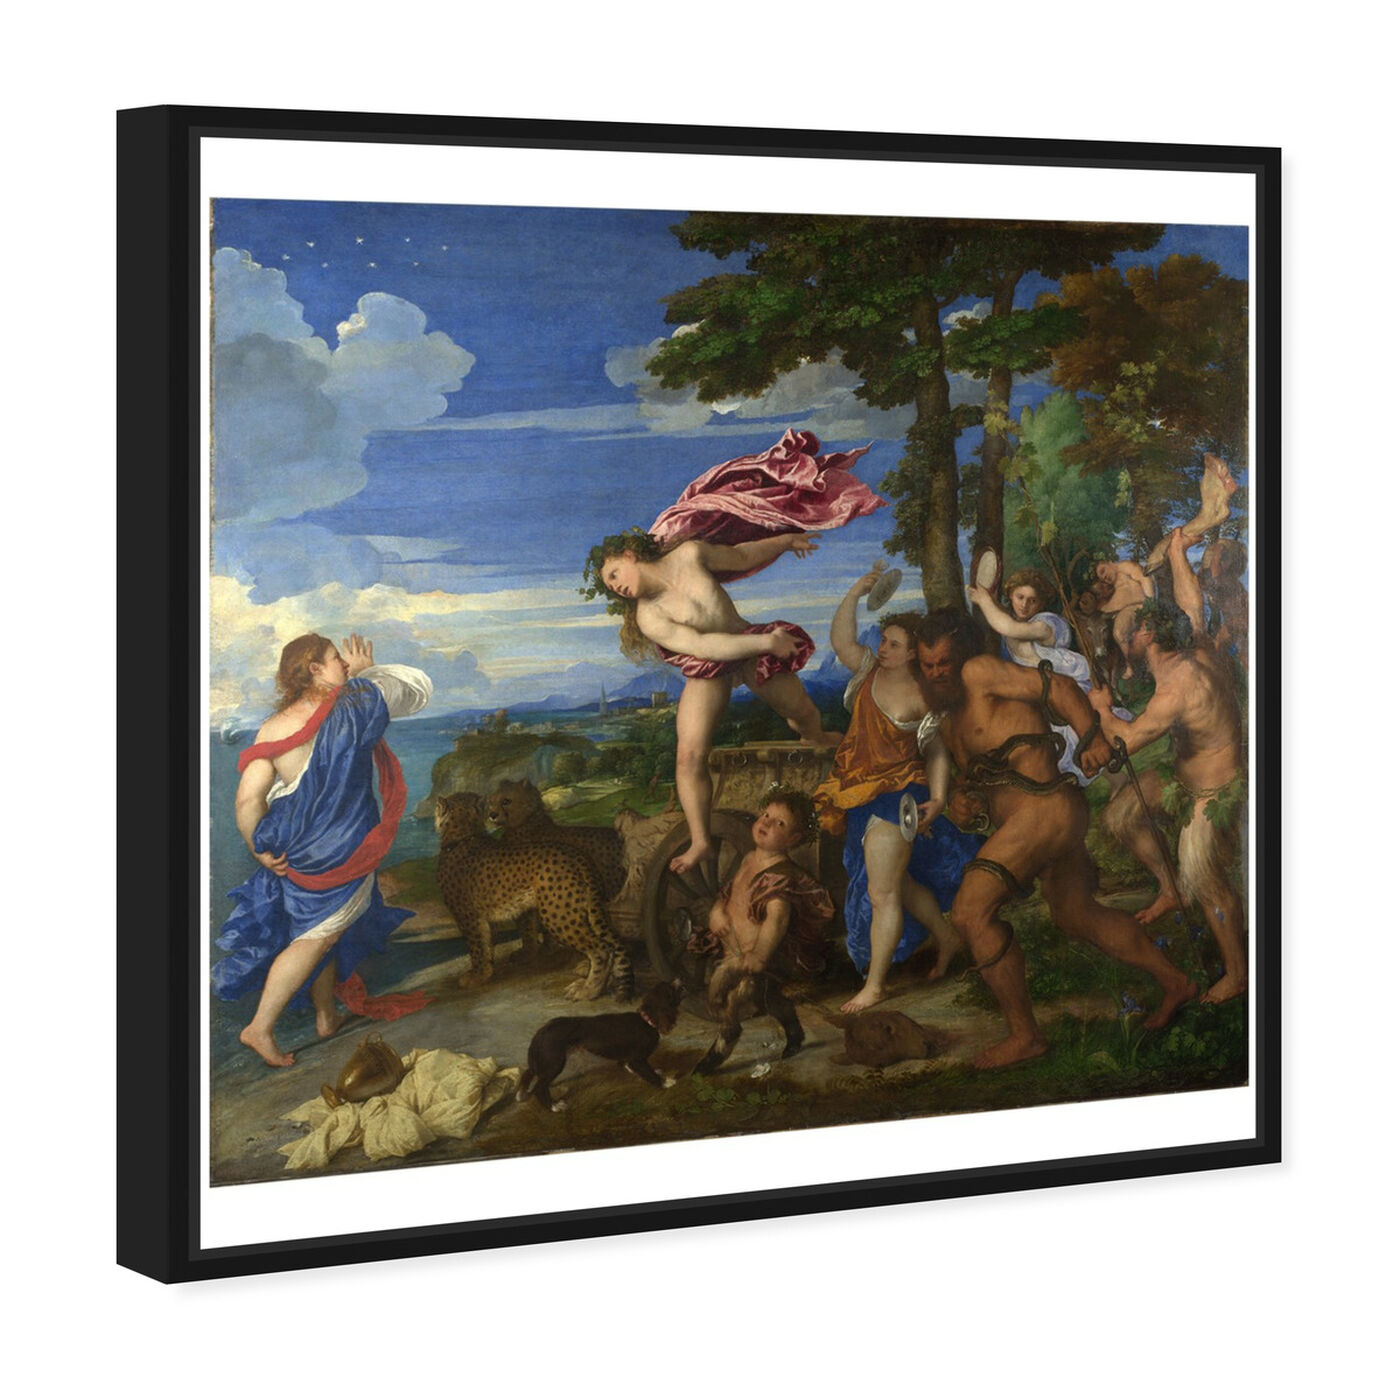 Angled view of Titian - Bacchus and Ariadne featuring classic and figurative and renaissance art.